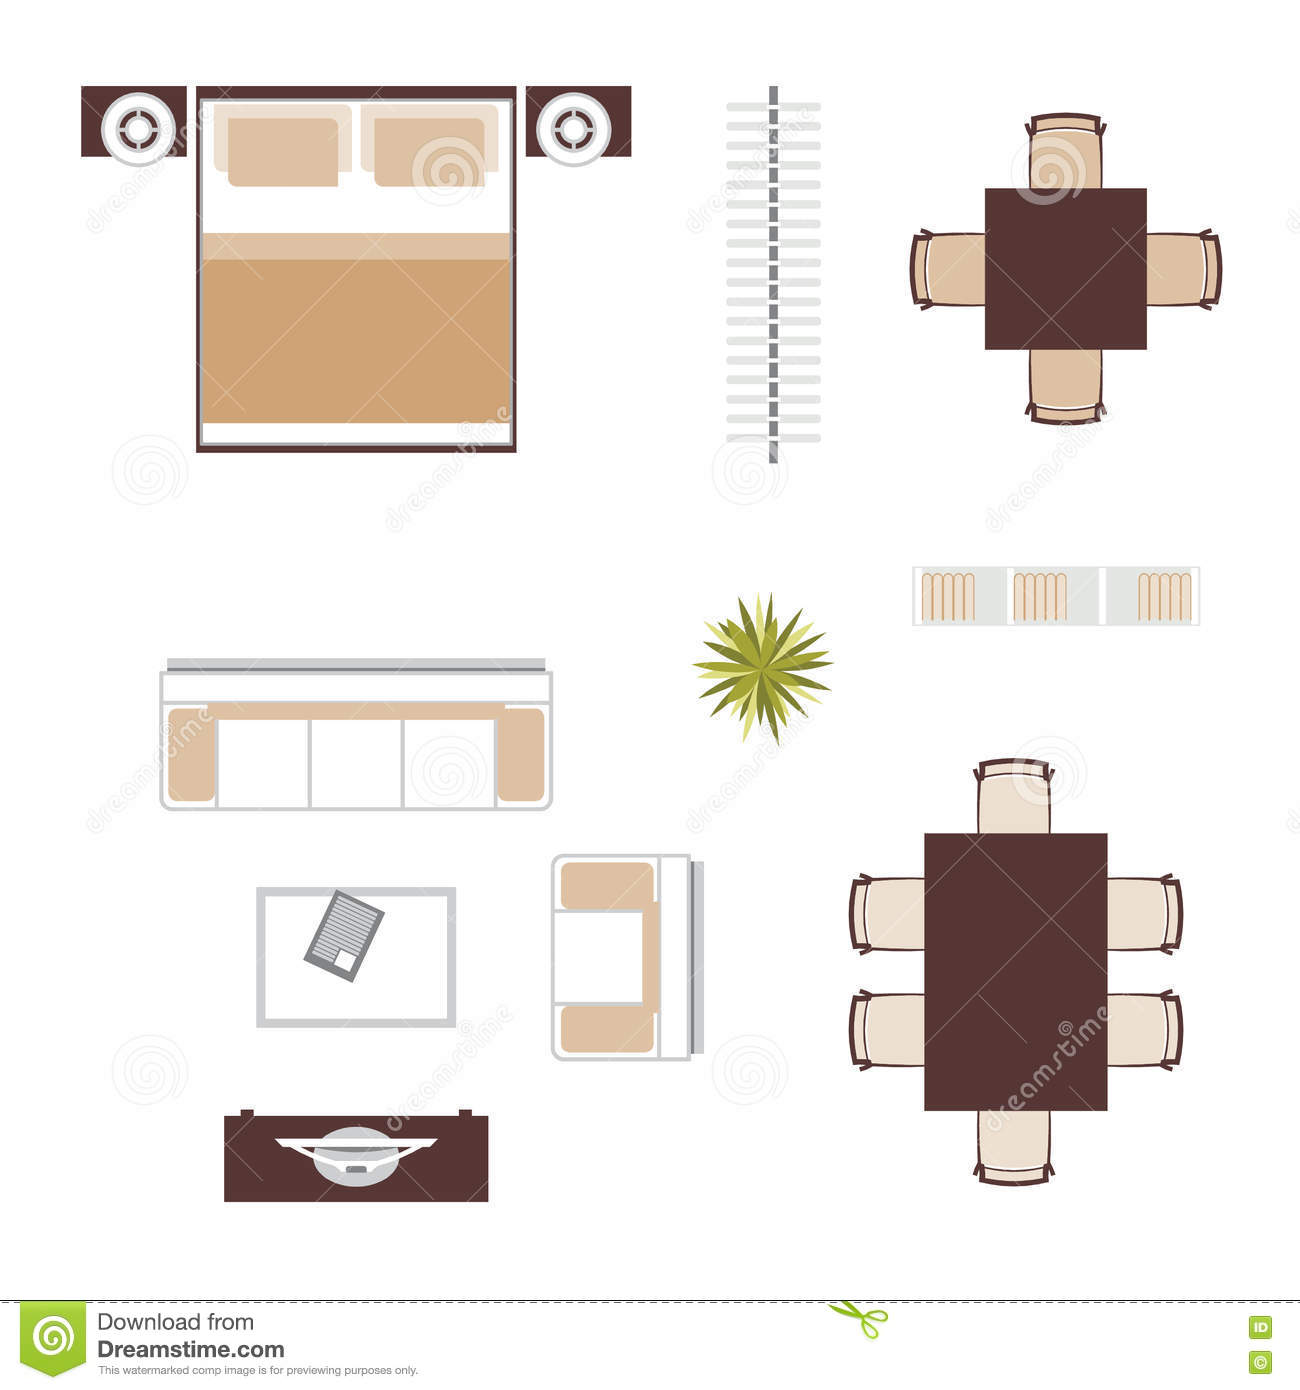 Furniture Top View Vector Stock Vector Illustration Of Plant 74089767